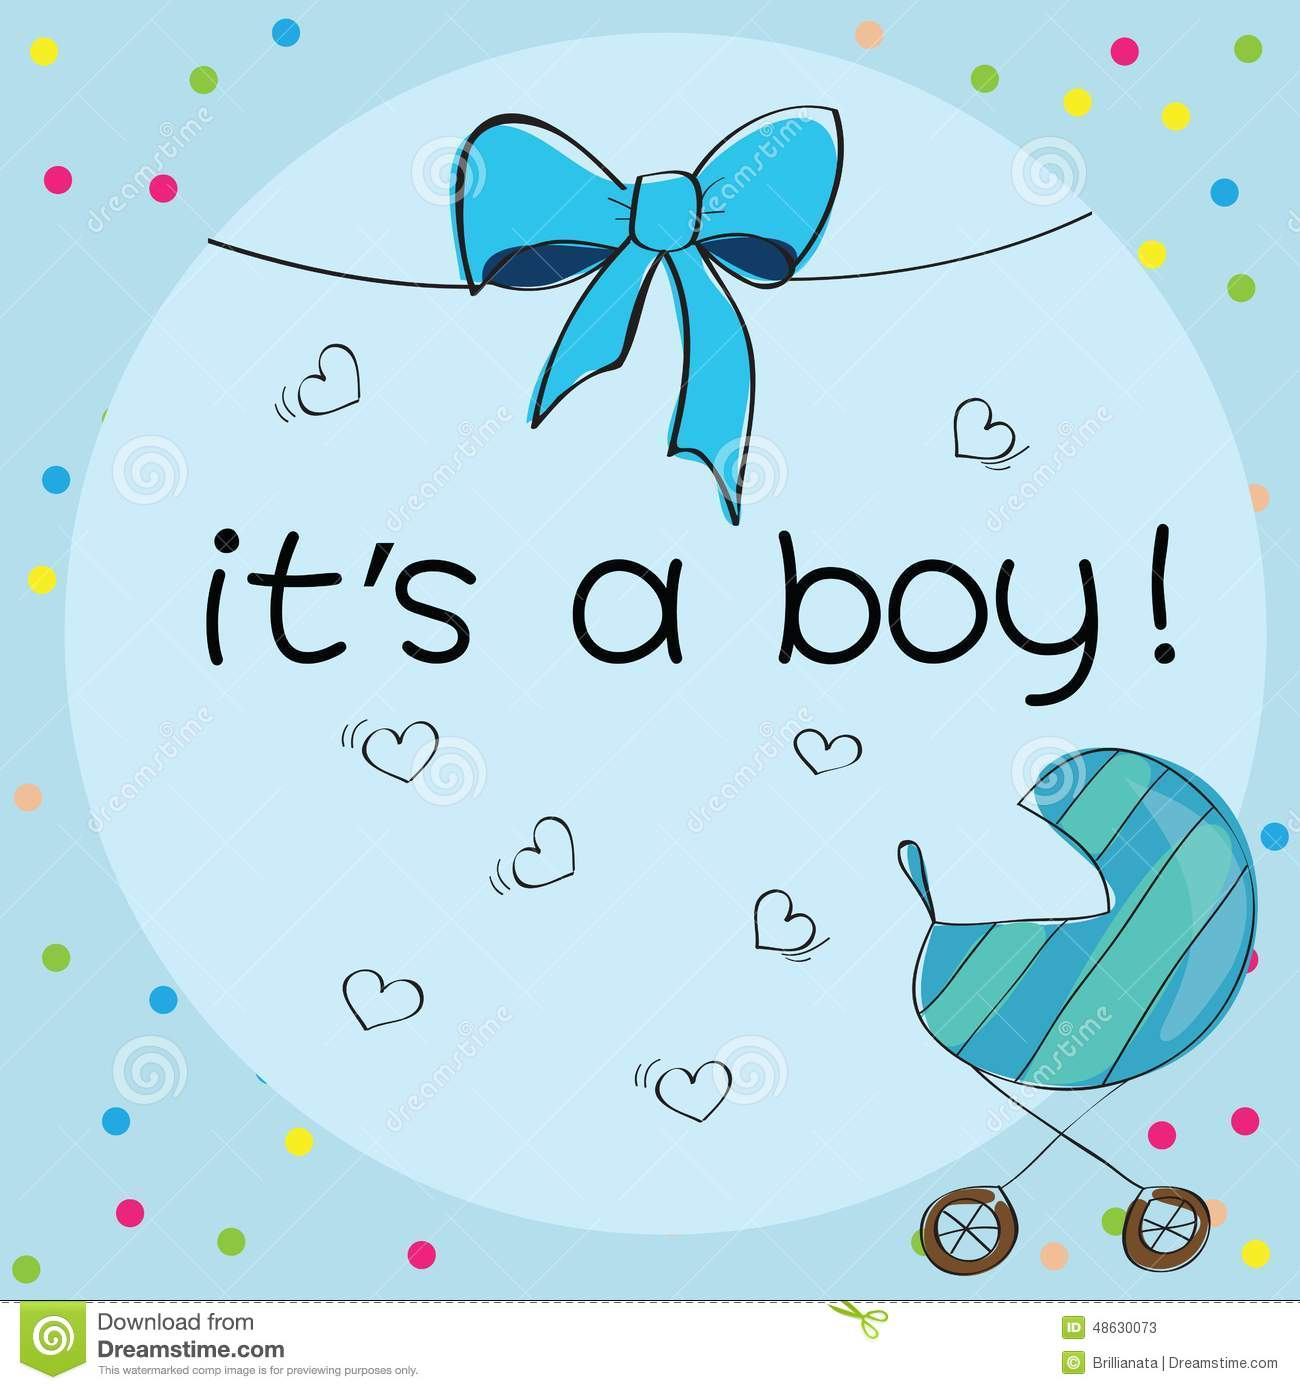 Baby card - Its a boy theme - with baby carriage.